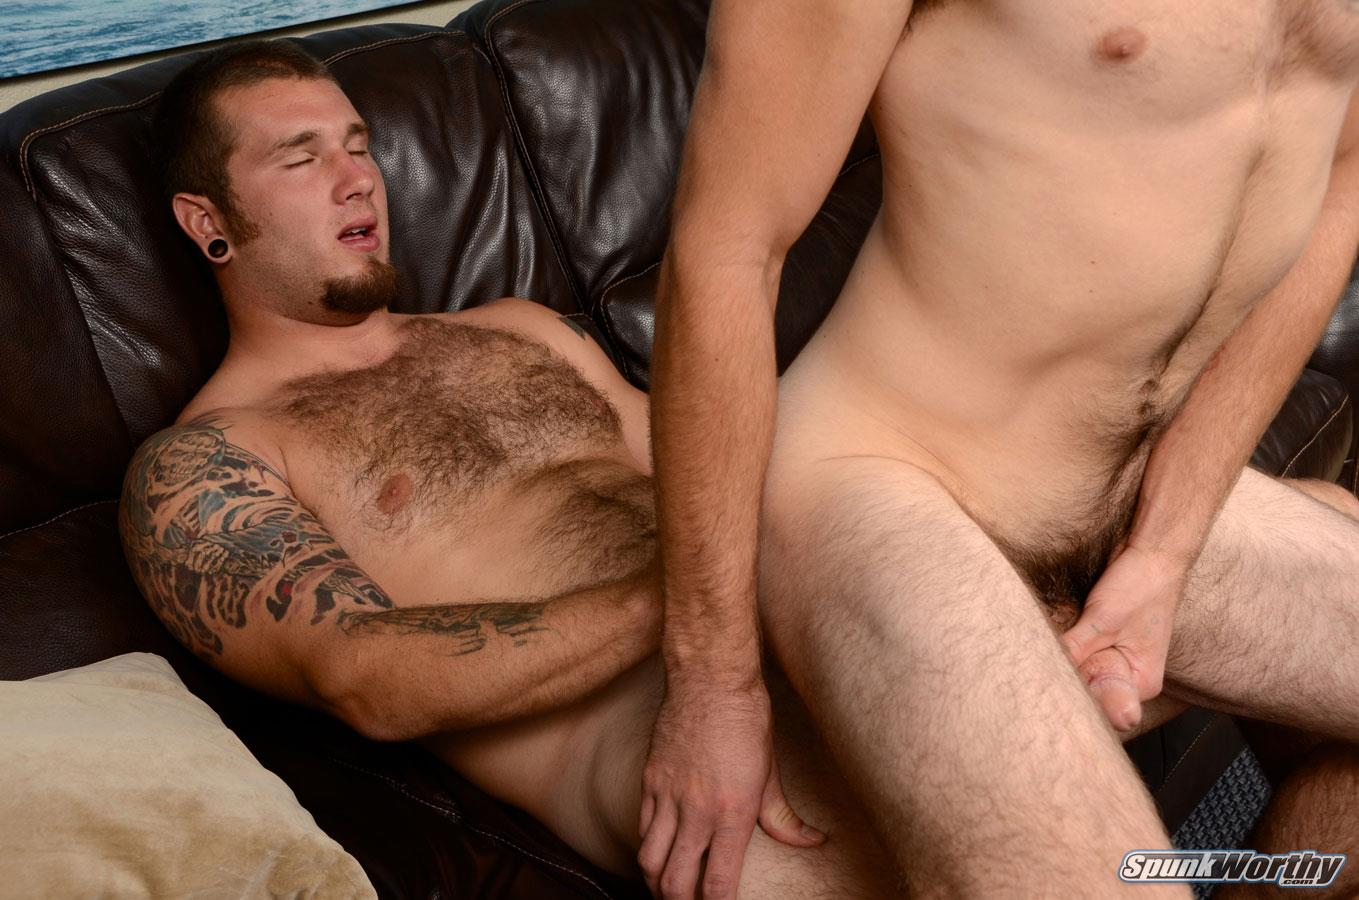 SpunkWorthy-Preston-and-Cy-Marine-Getting-Fucked-Hairy-Guy-Amateur-Gay-Porn-10 Bi-curious Marine Takes A Cock Up His Ass For The First Time